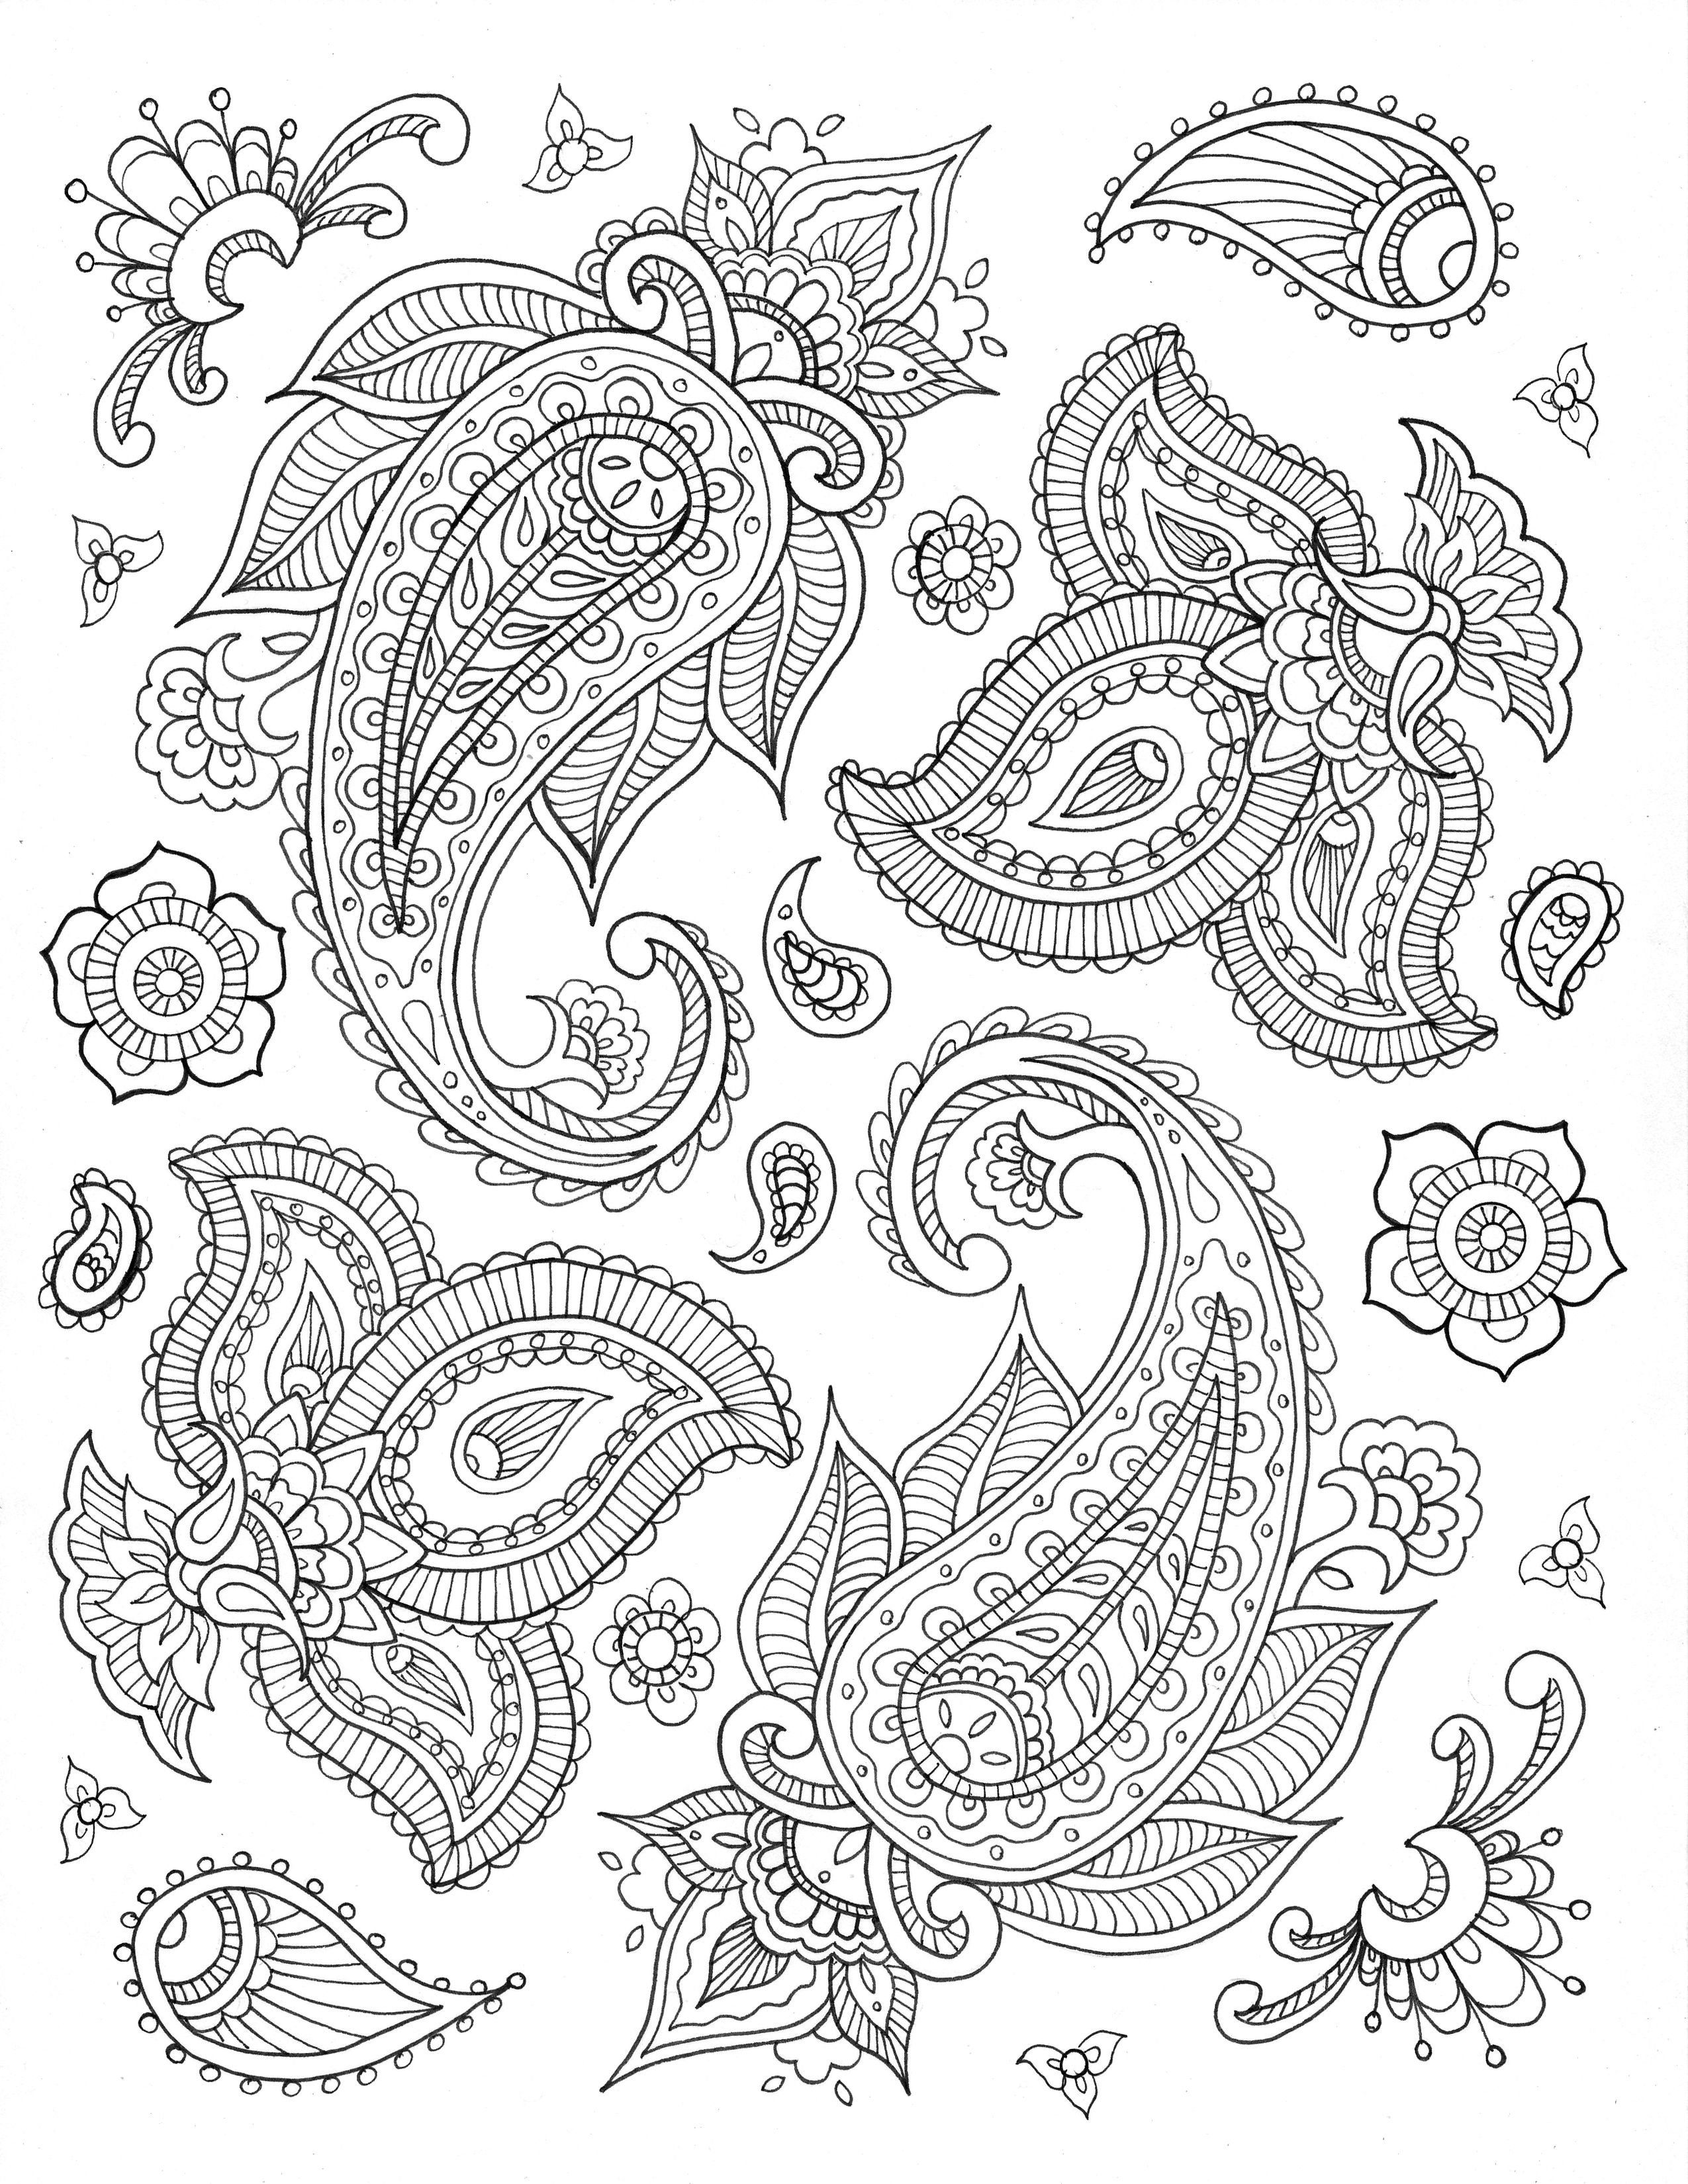 free printable paisley coloring pages paisley pattern coloring page free printable coloring pages paisley printable free pages coloring